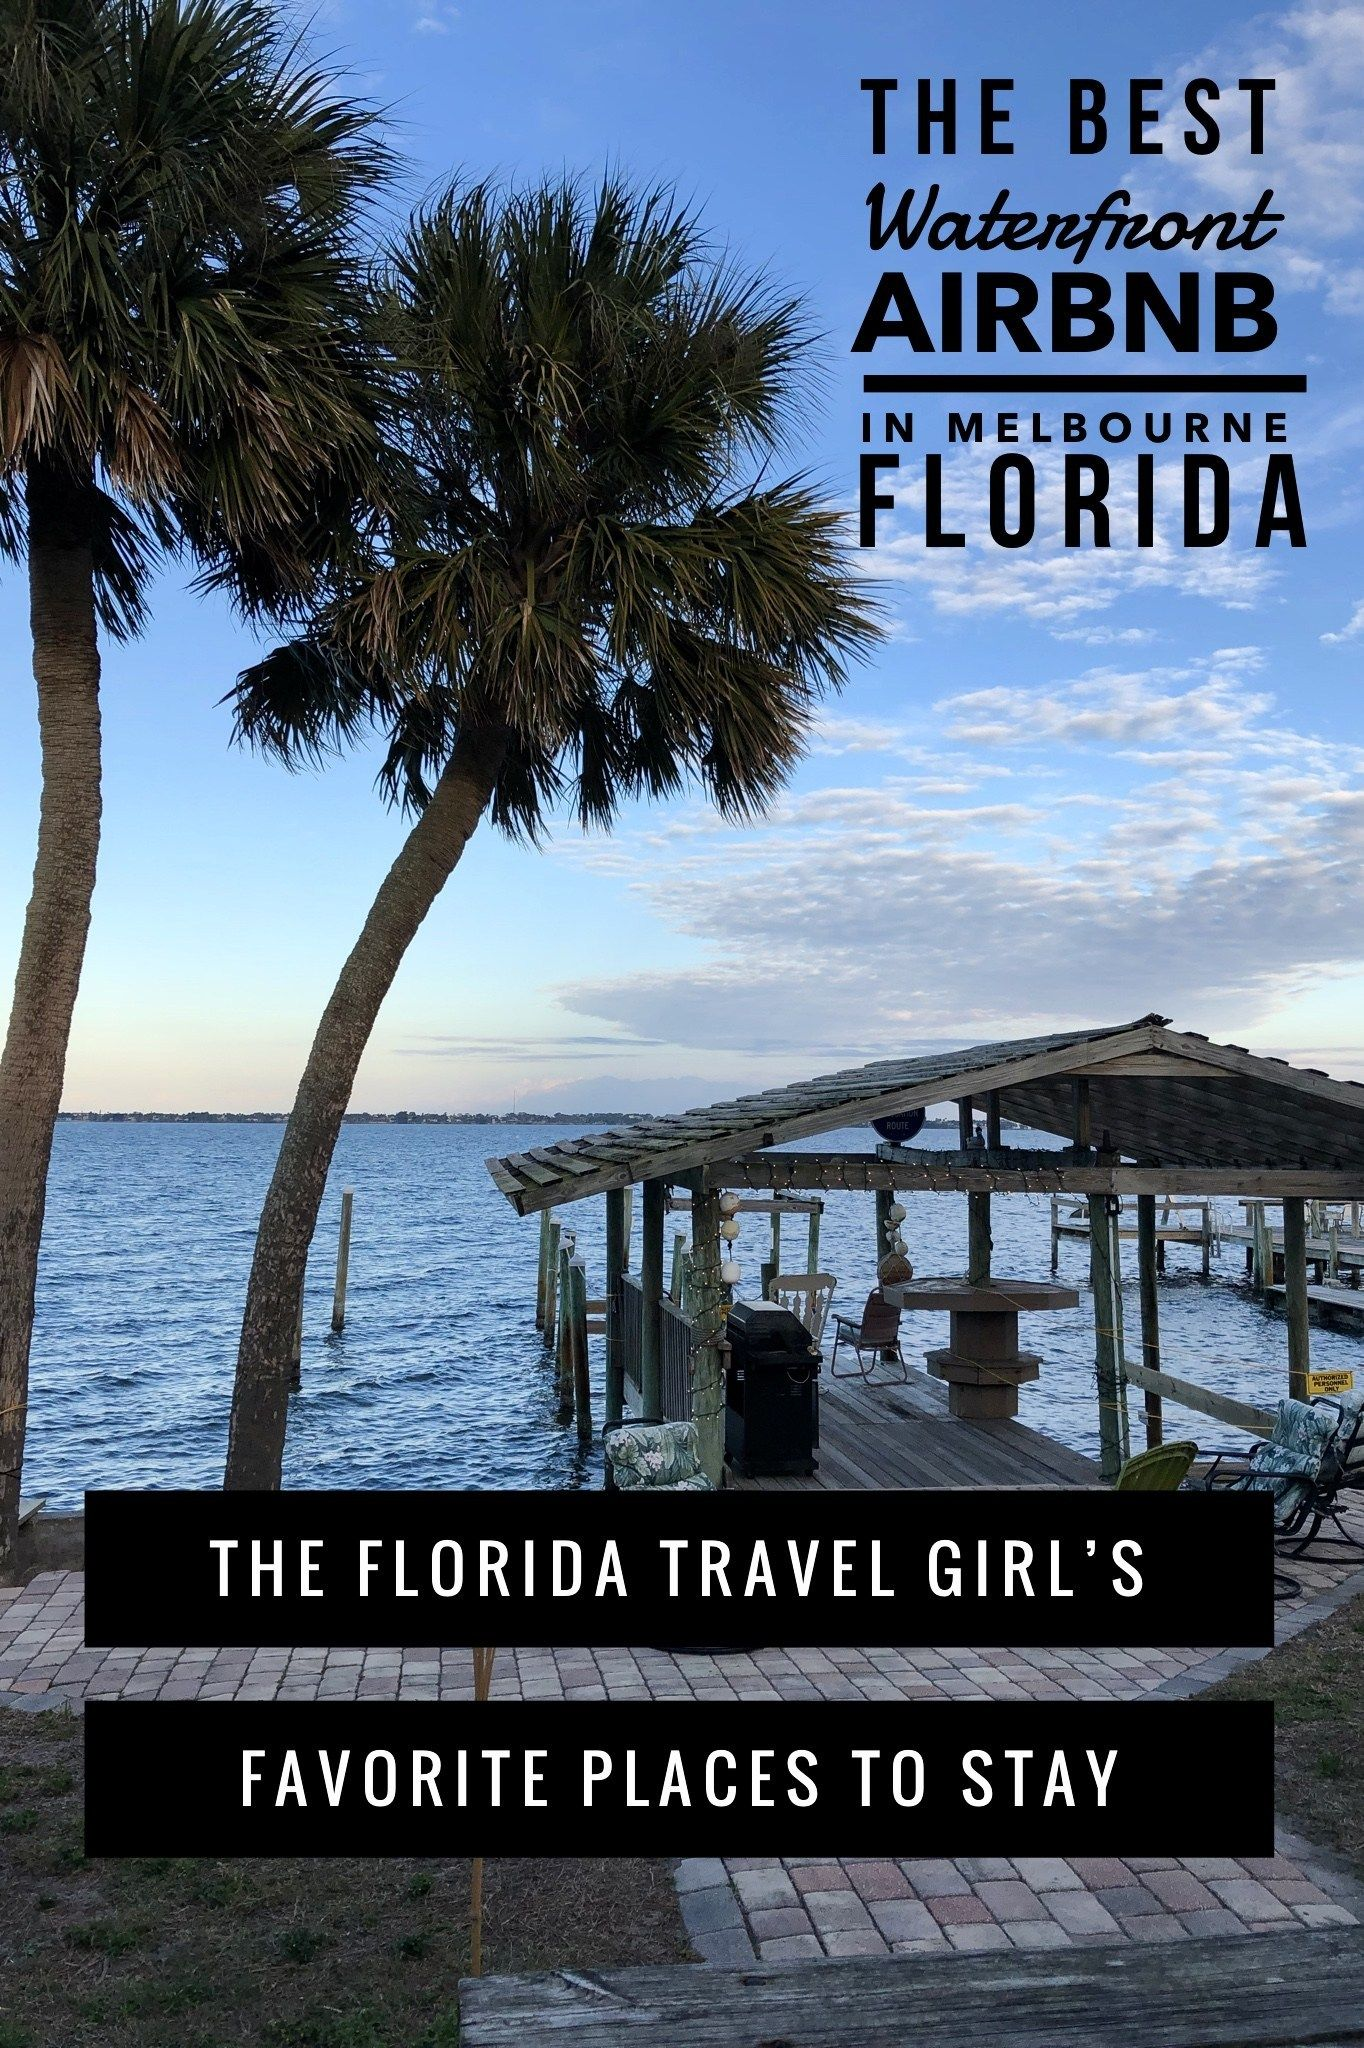 Where To Stay In Melbourne Fl The Pineapple River House Review The Florida Travel Girl Florida Travel Melbourne Florida Australia Vacation